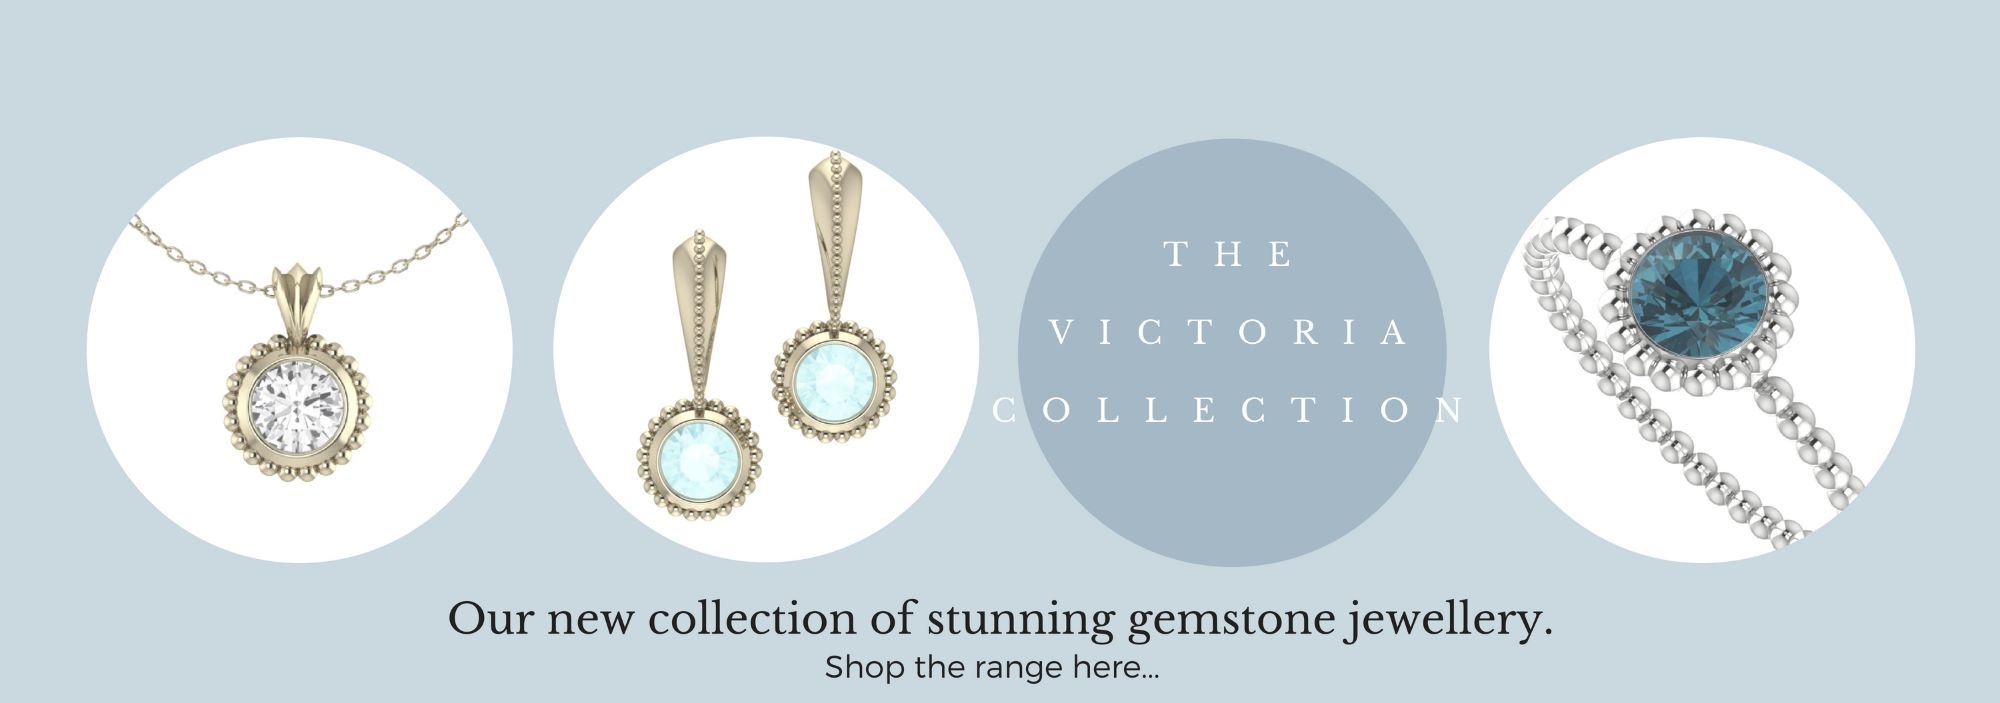 The Victoria Collection, a new collection of contemporary gemstone engagement rings, necklaces and earring.